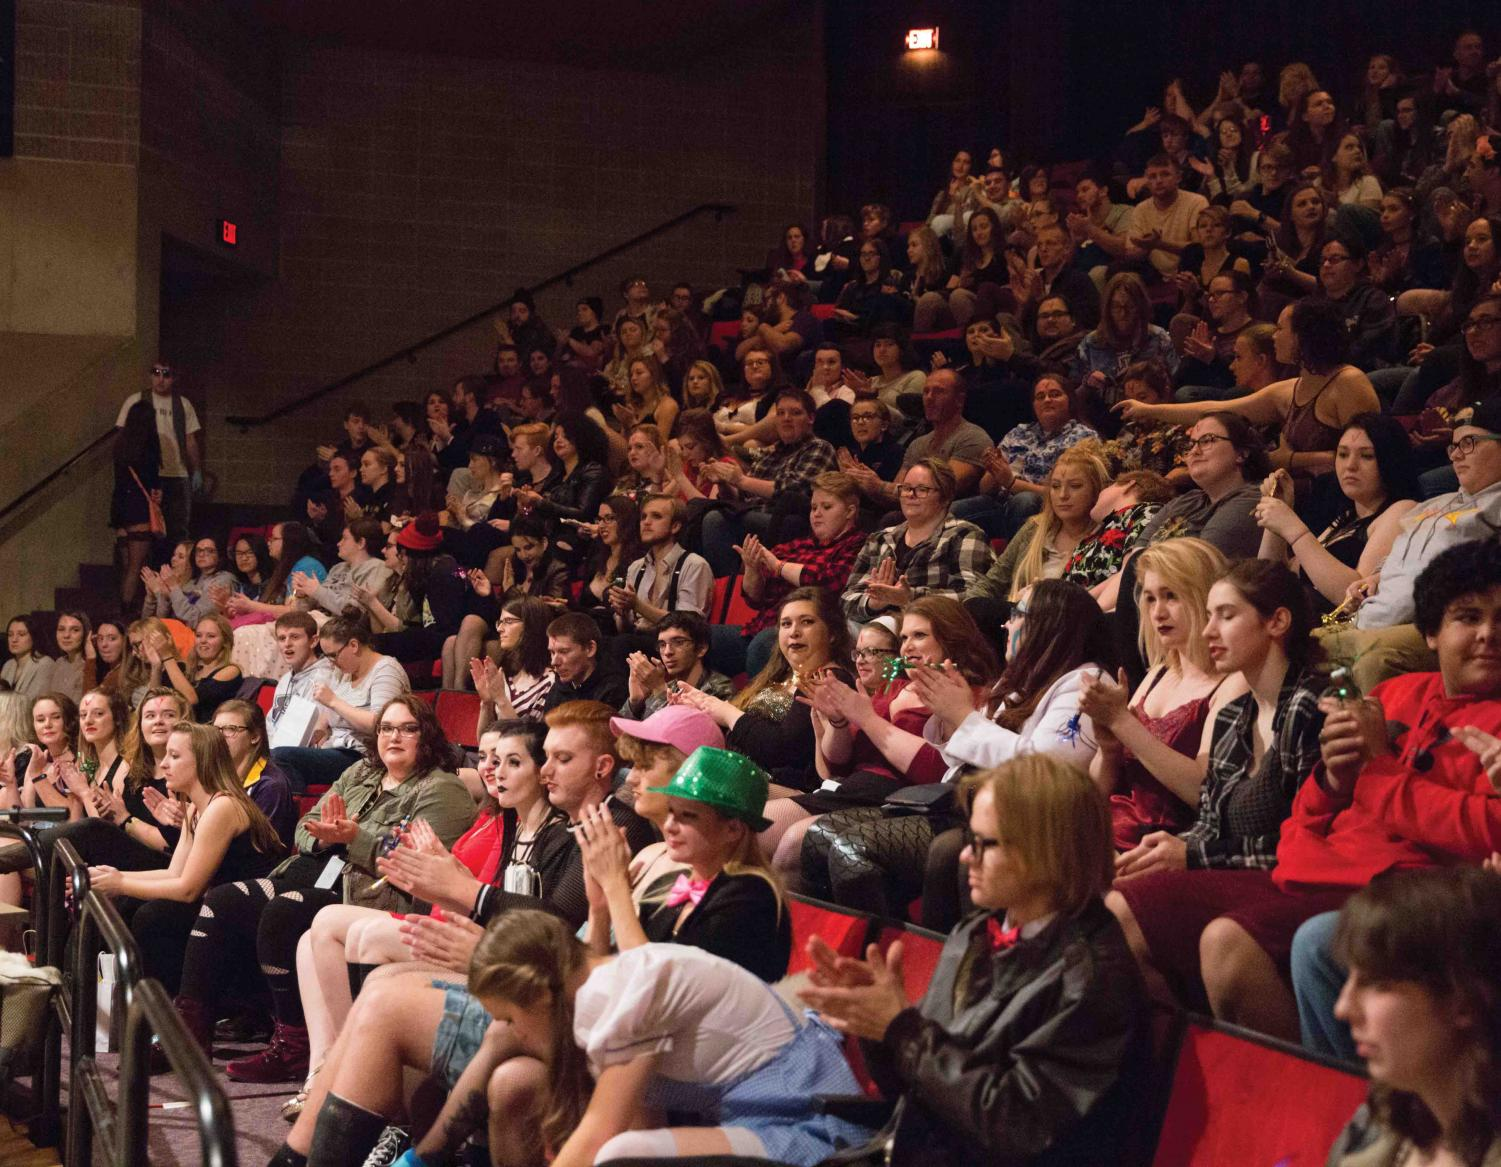 Students flocked to Strayer-Wood Theatre on Friday, Nov. 2 for a showing of